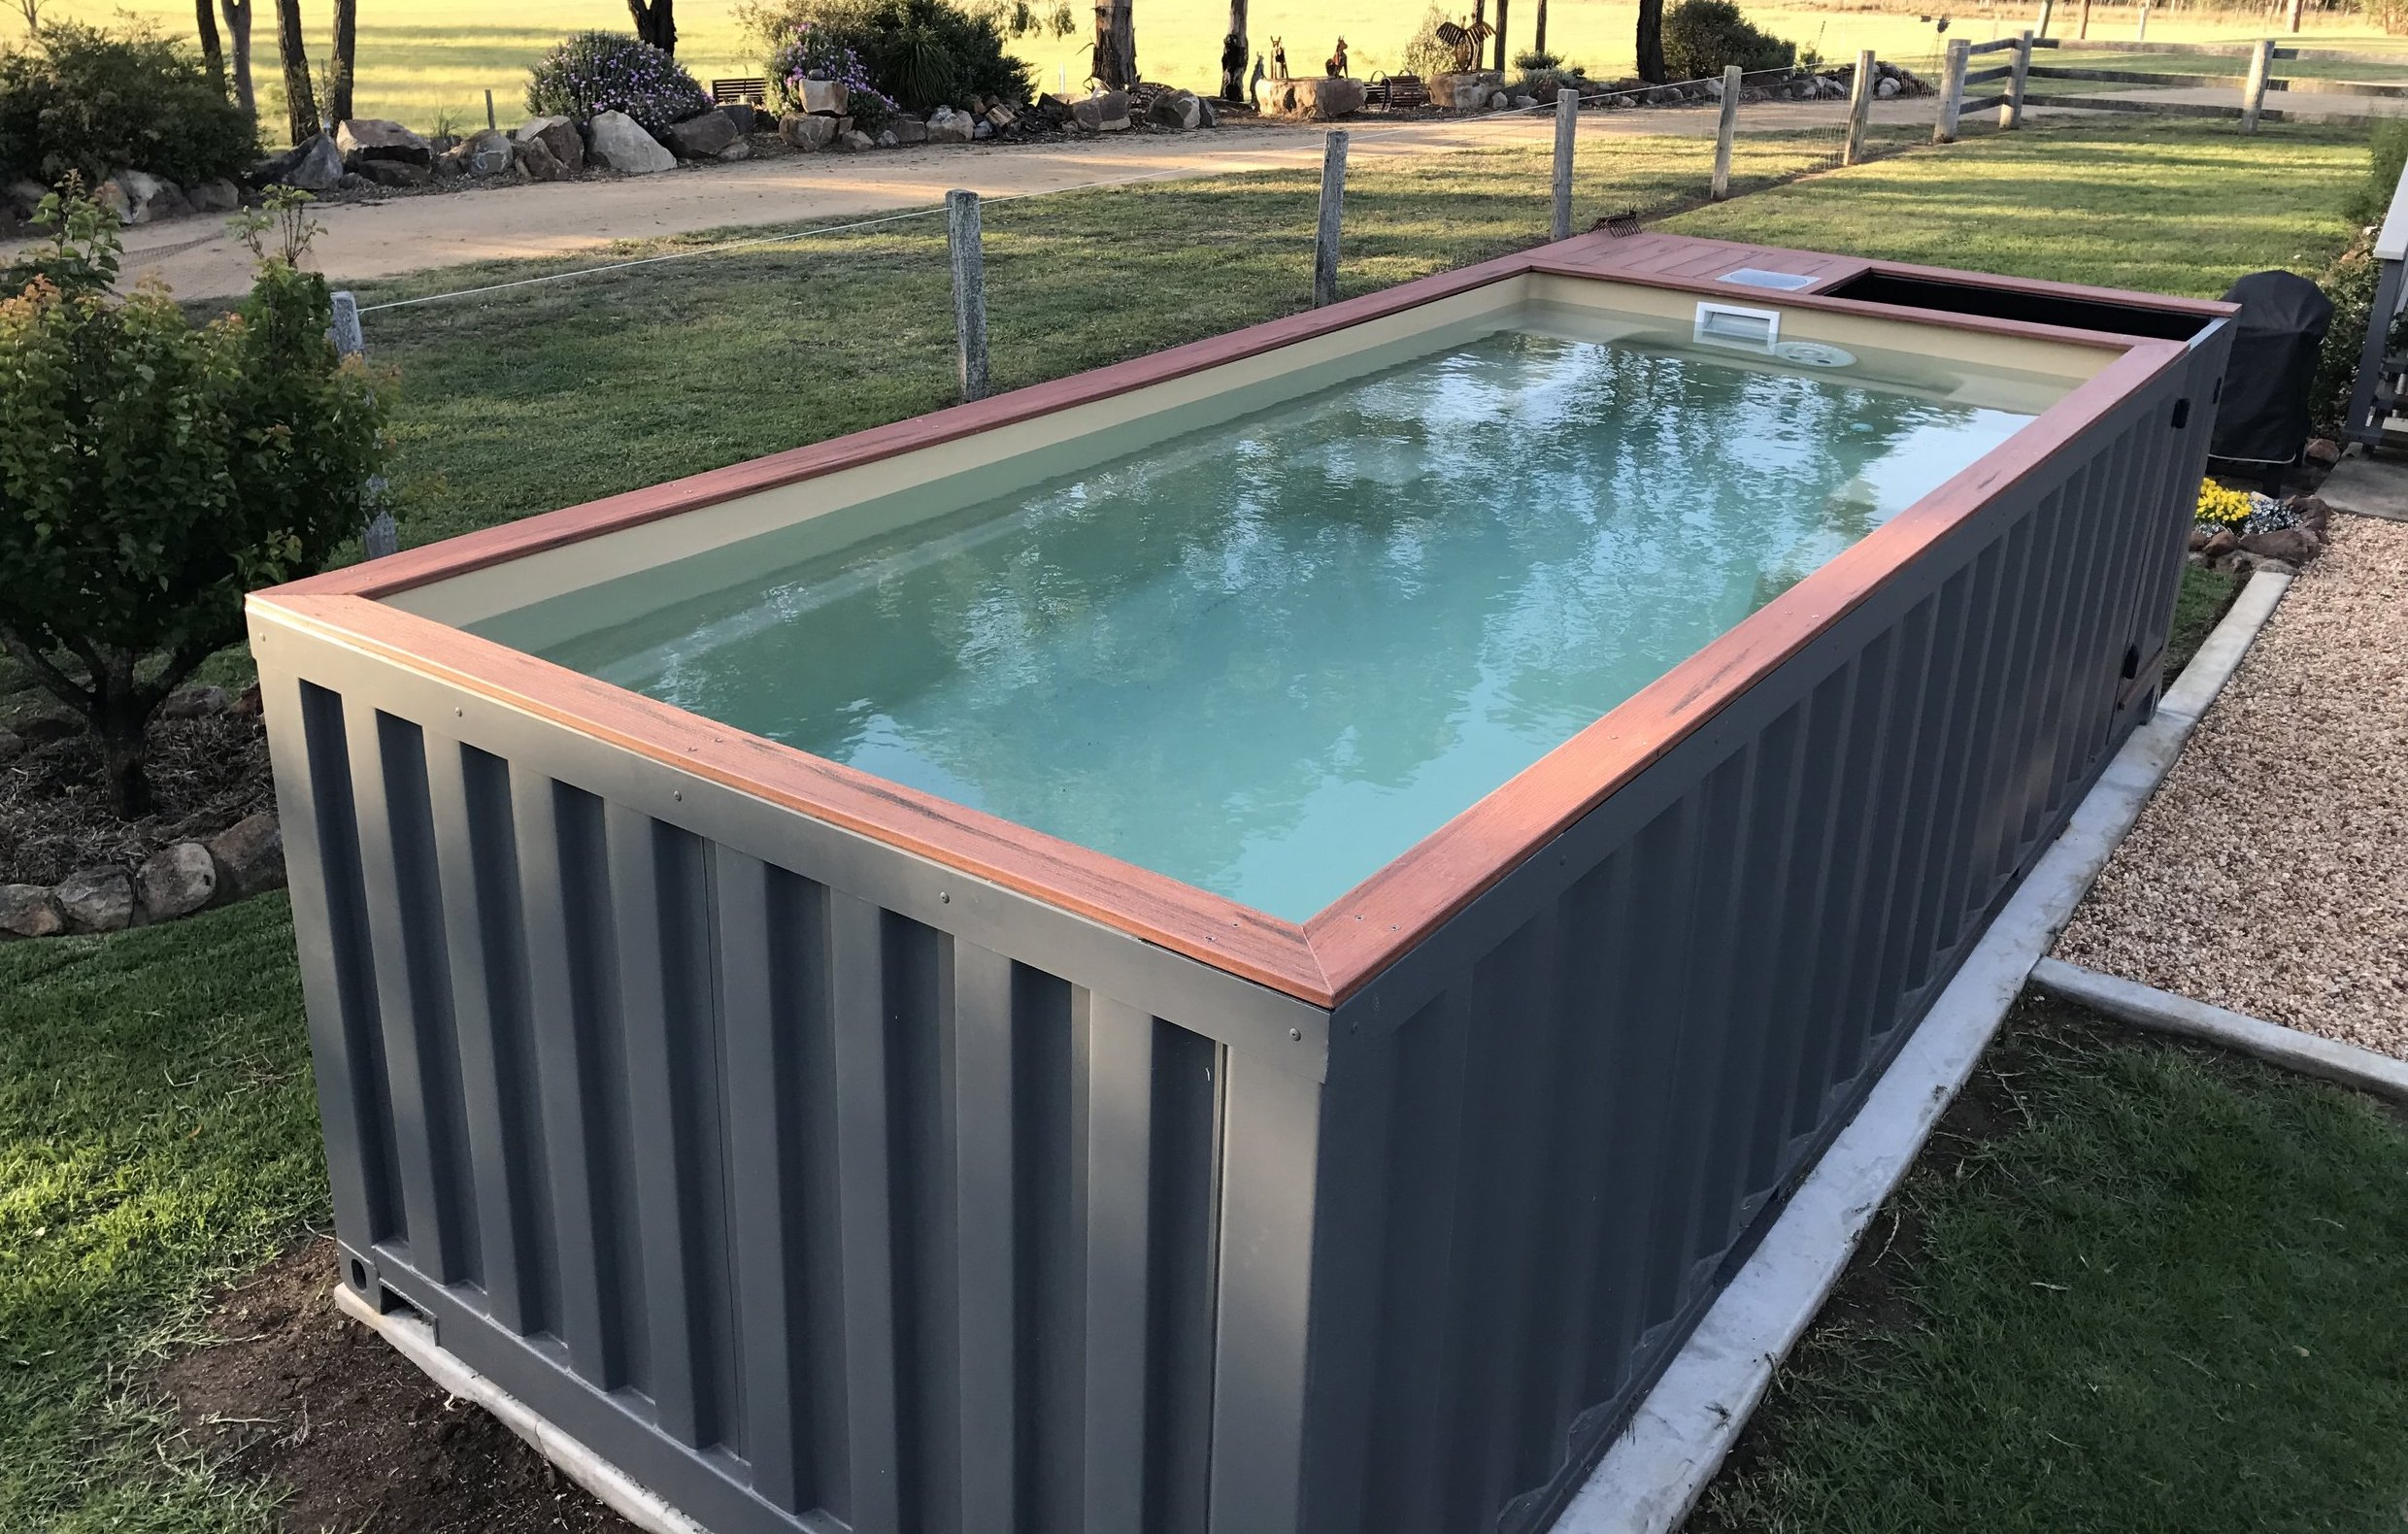 The diy shipping container swimming pool buy a shipping for How to buy a house cheap